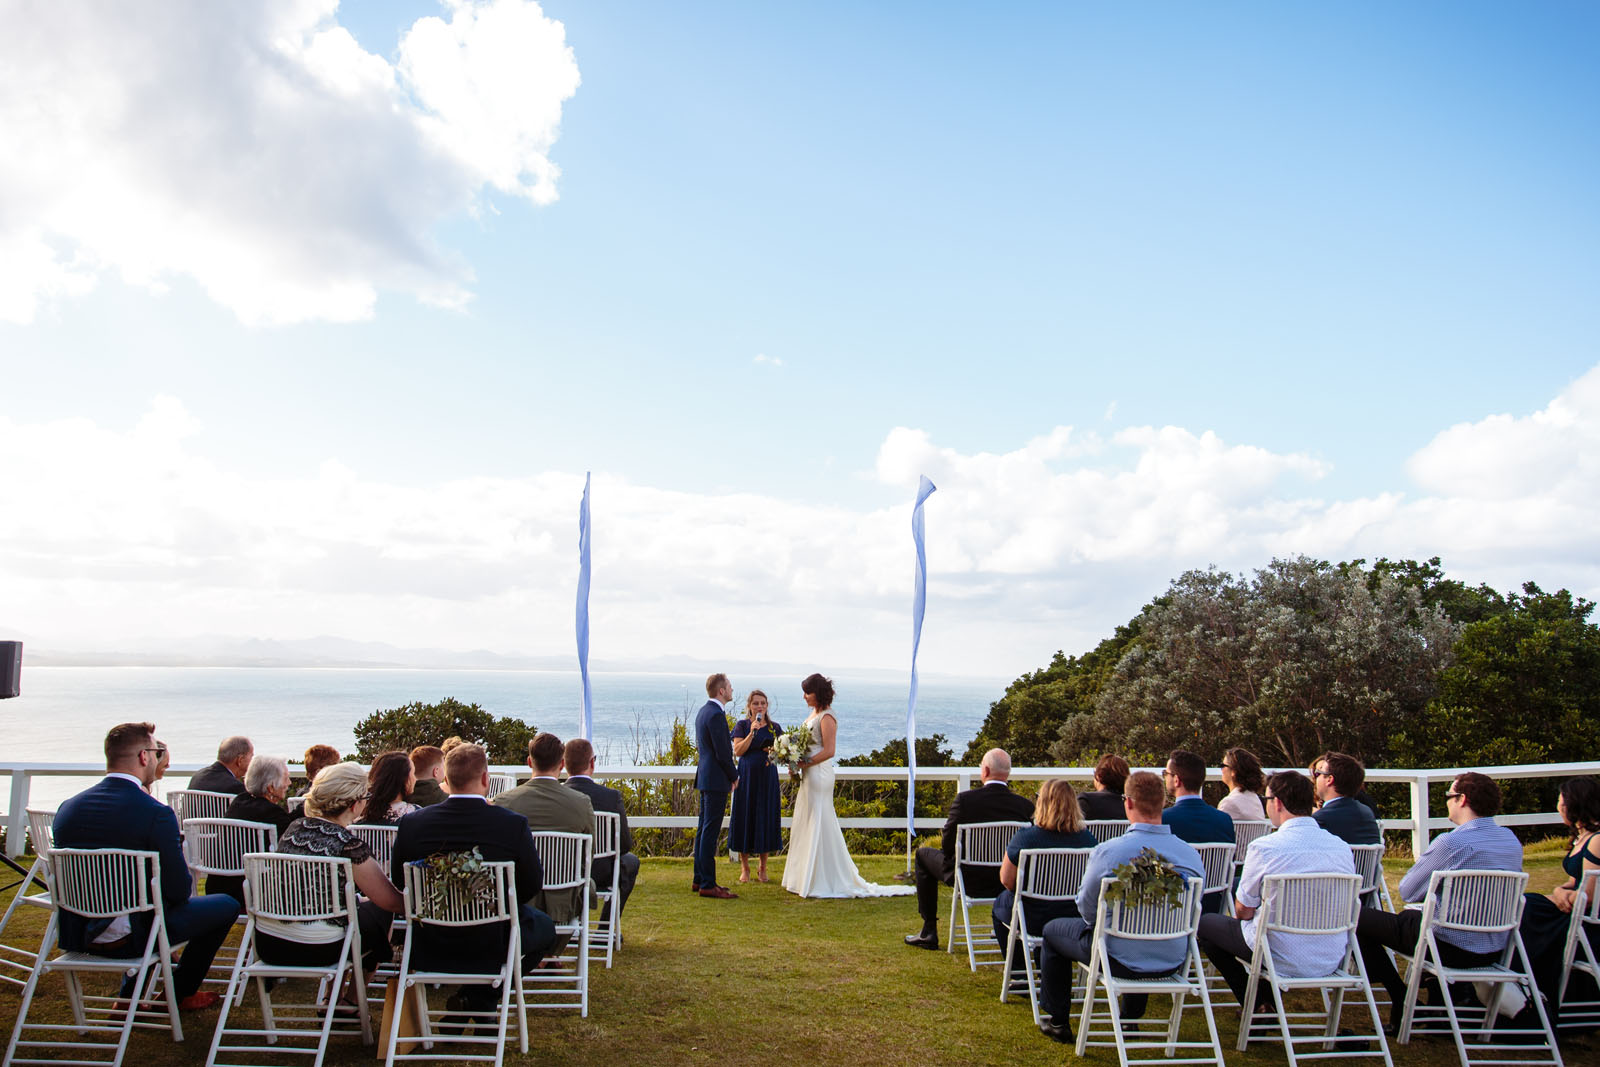 byron_bay_wedding_photogrpaher_586